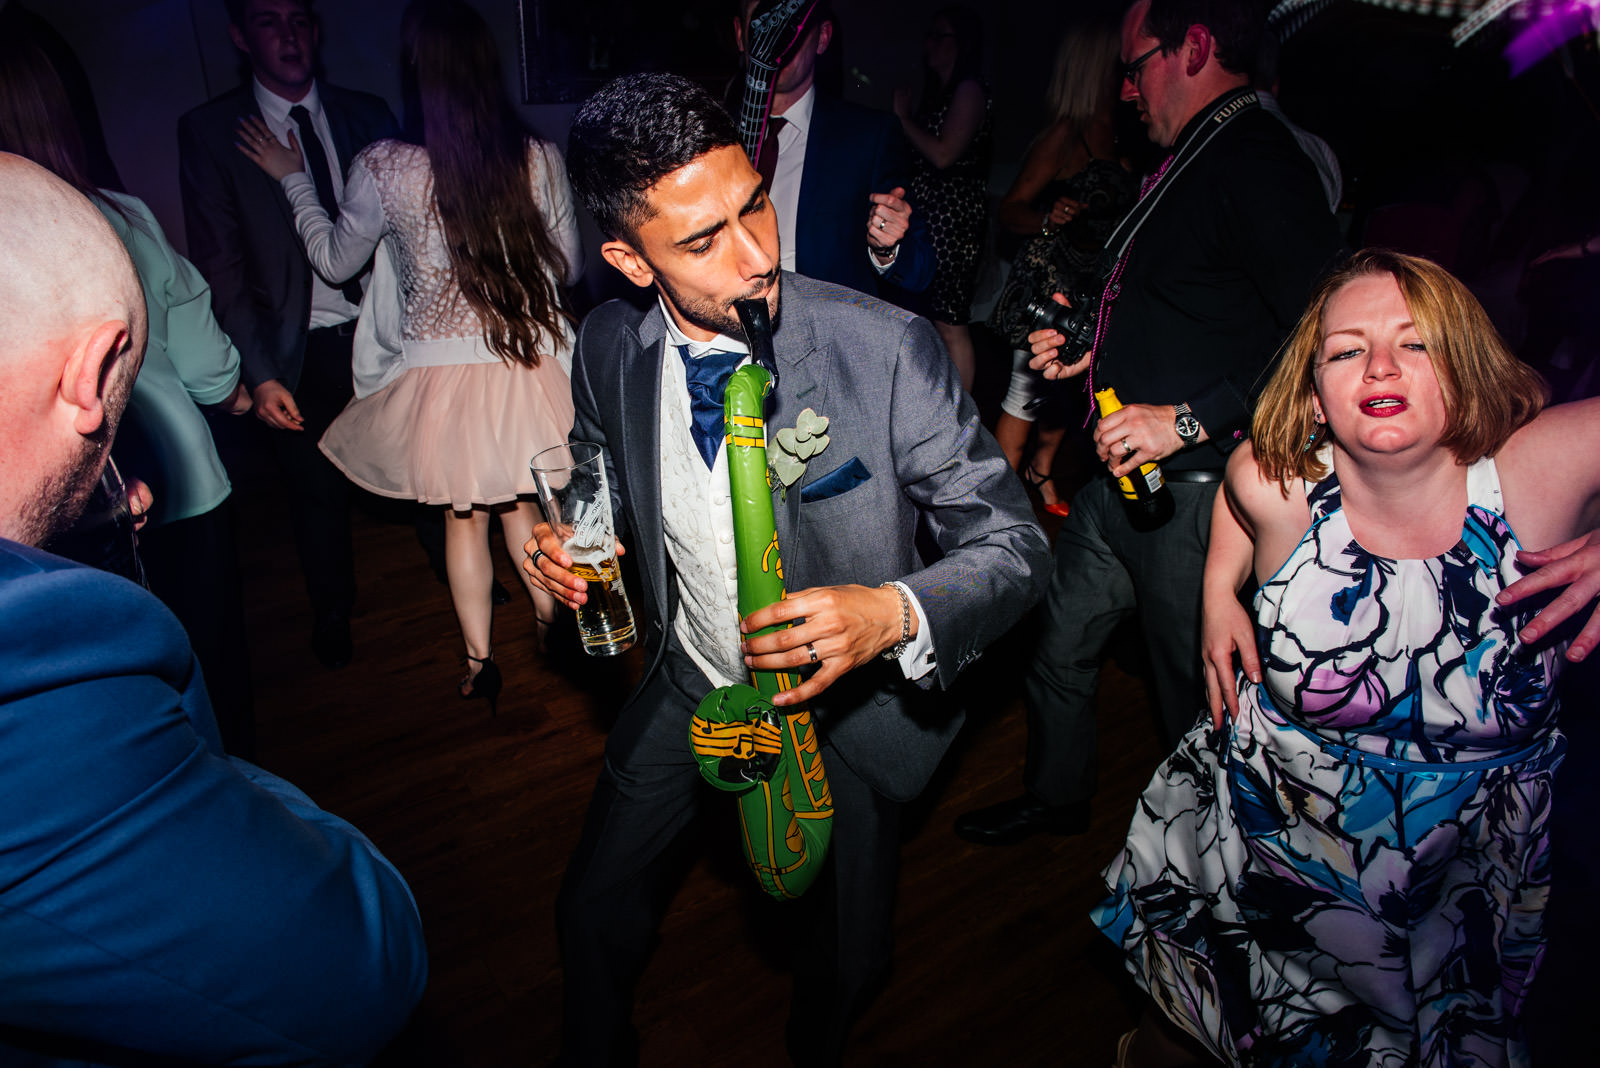 Groom with inflatable saxophone